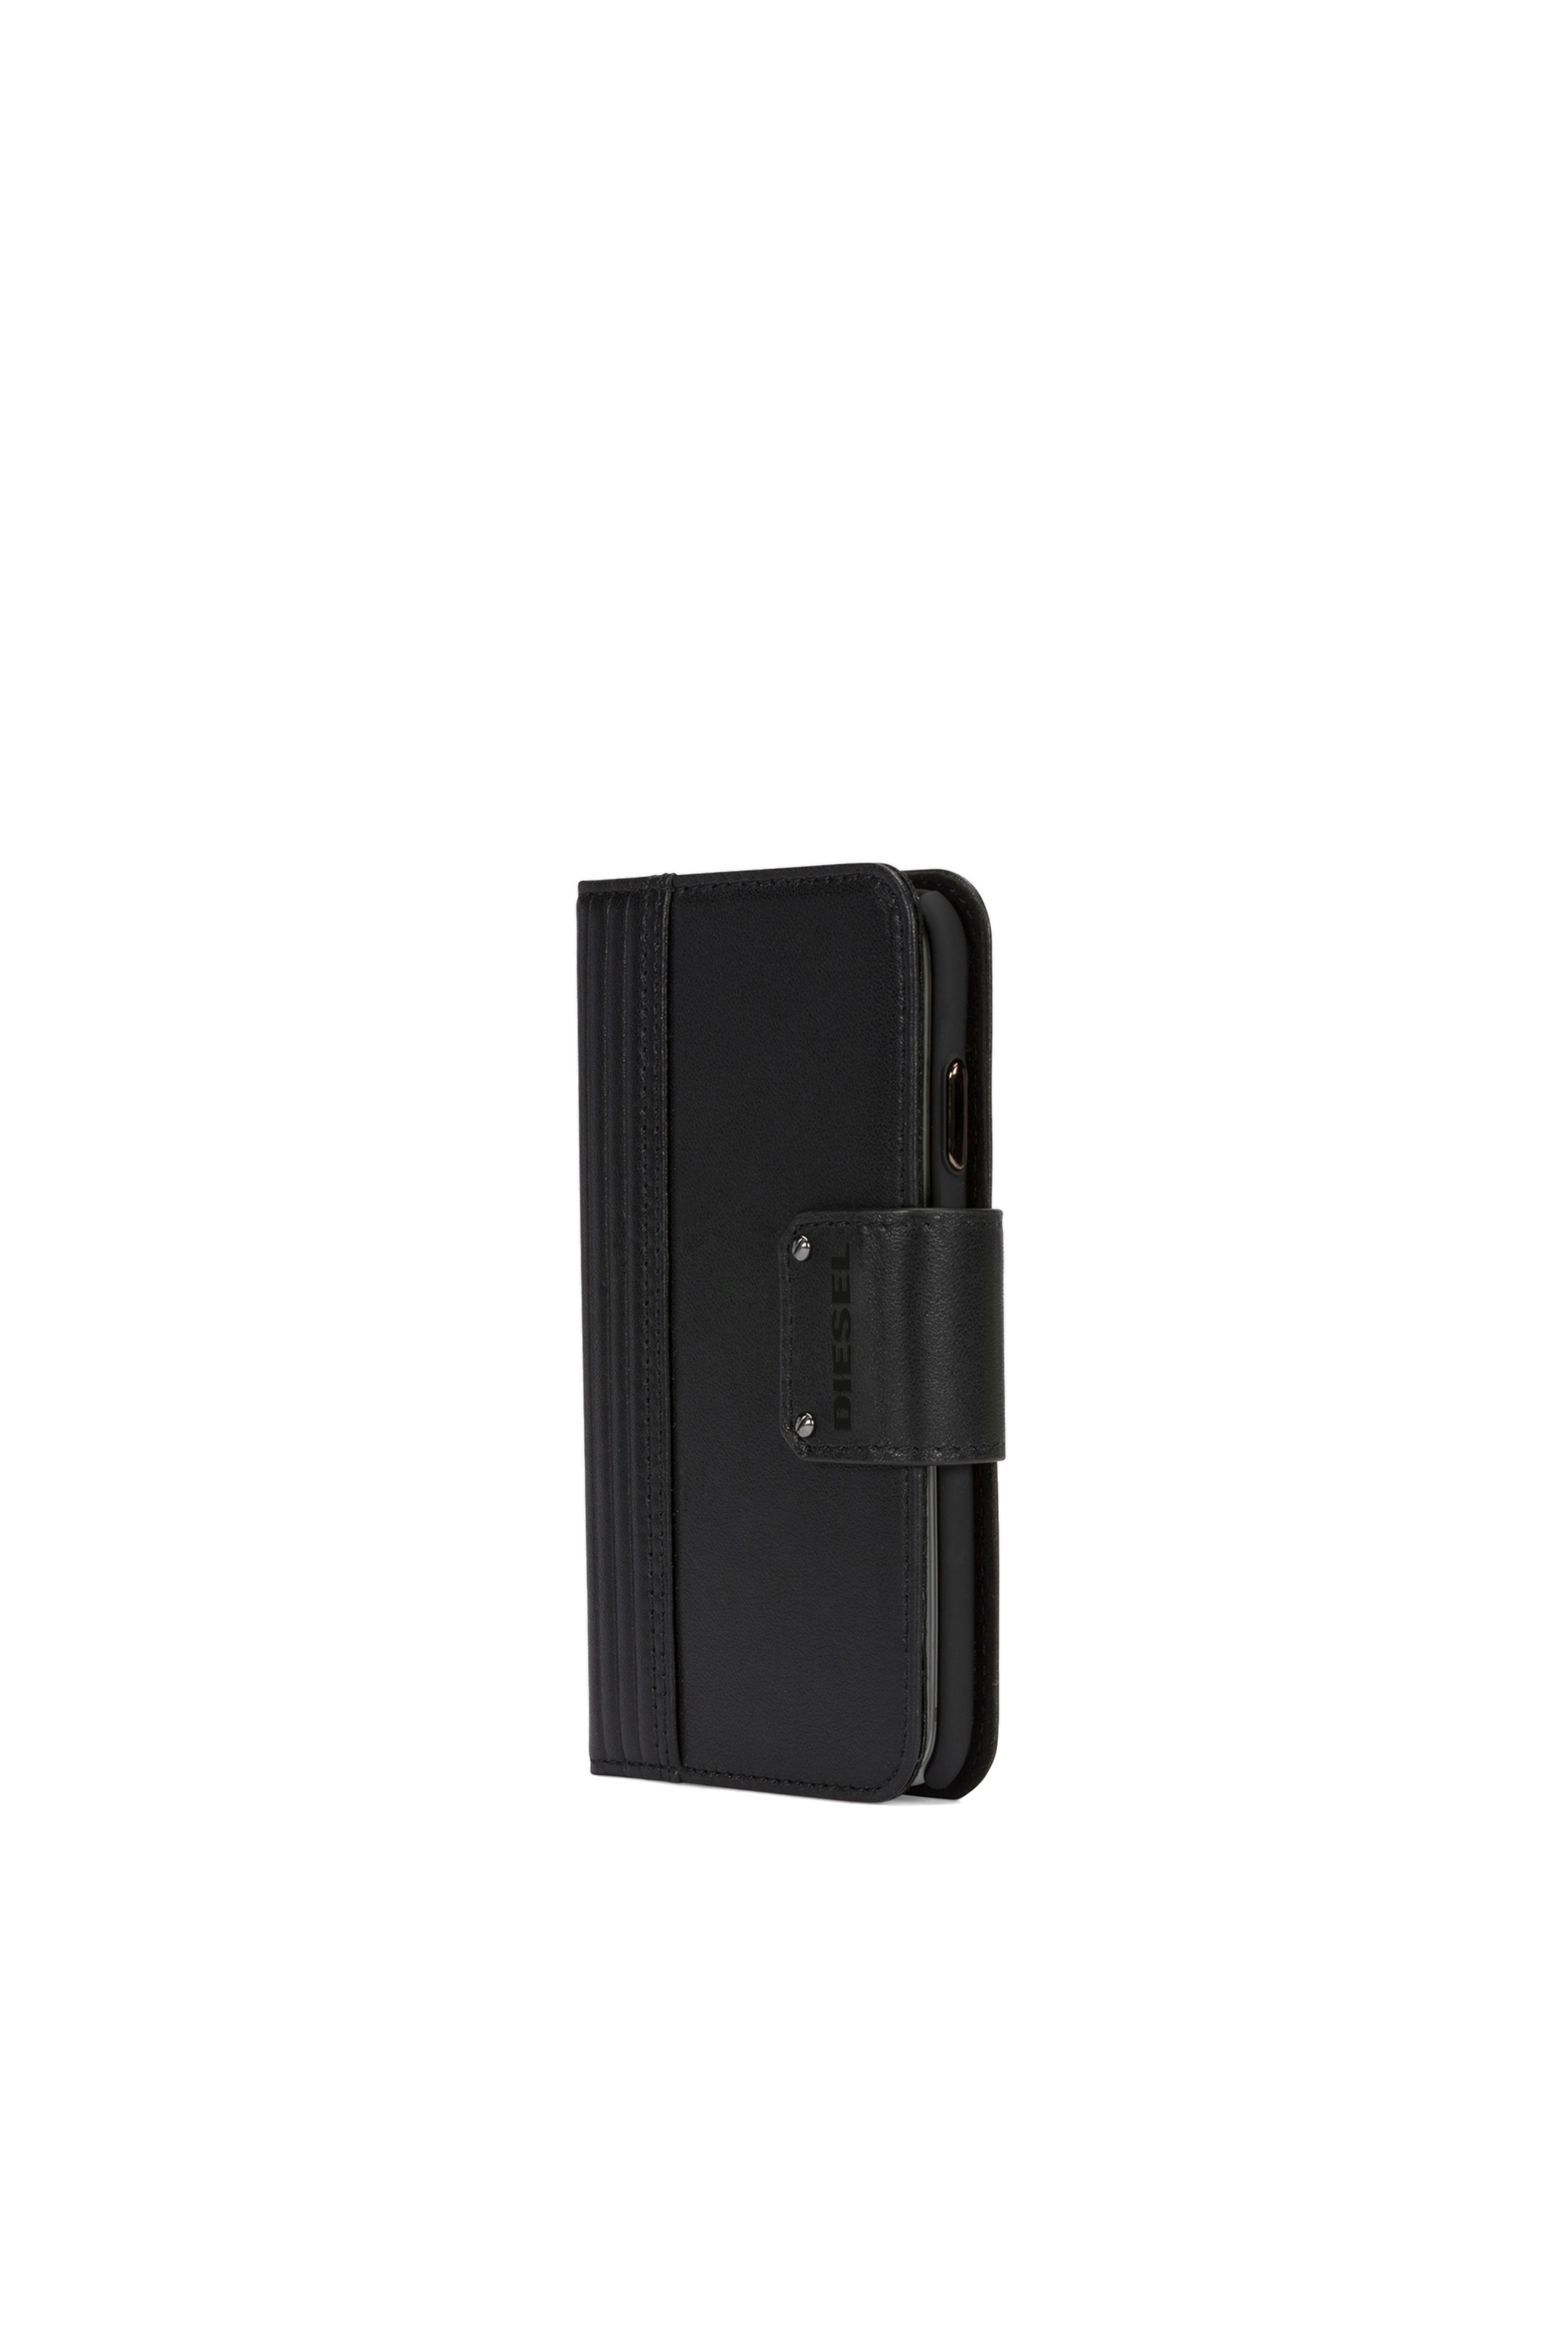 Diesel - BLACK LINED LEATHER IPHONE X FOLIO,  - Klappcover - Image 5